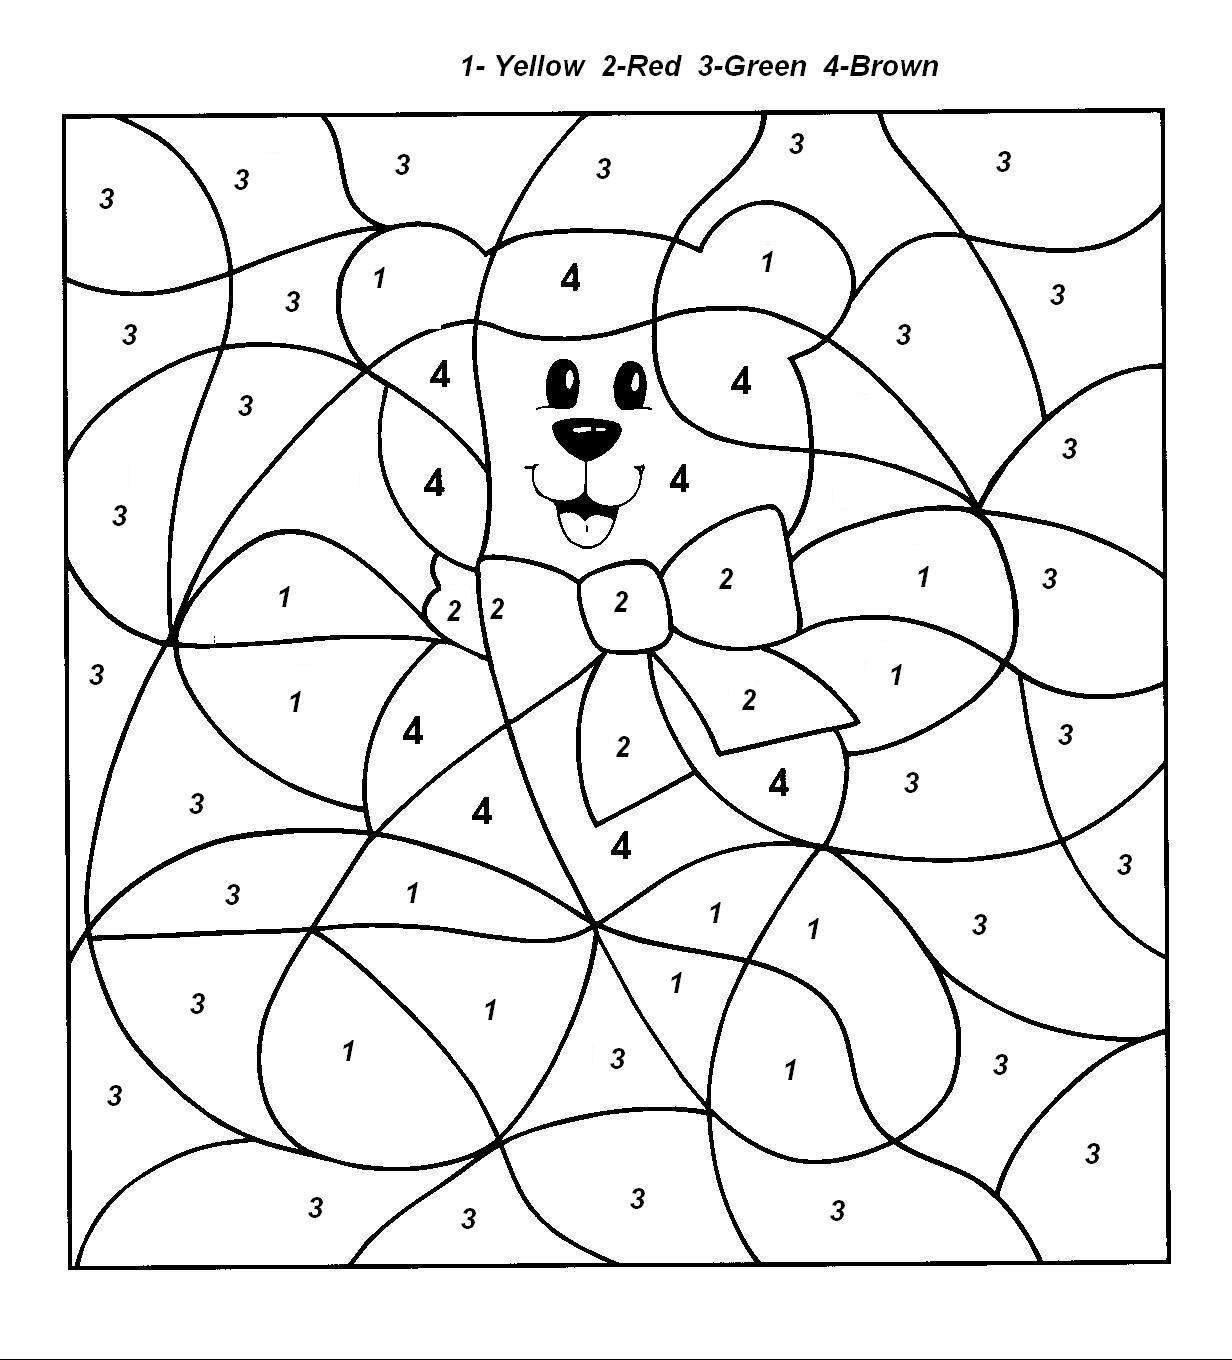 Color by number coloring pages to download and print for free